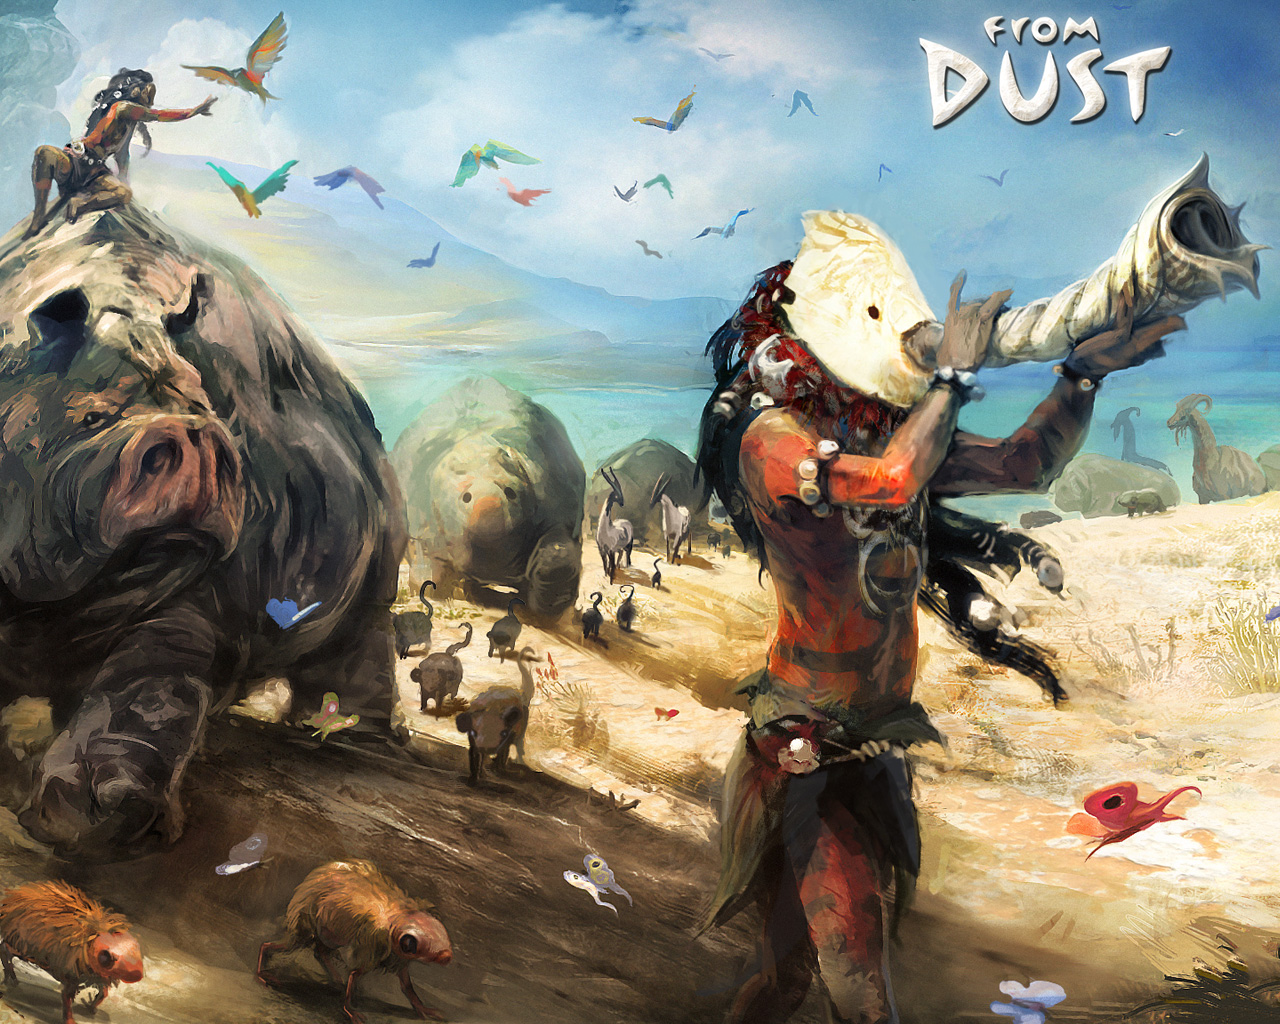 Free From Dust Wallpaper in 1280x1024